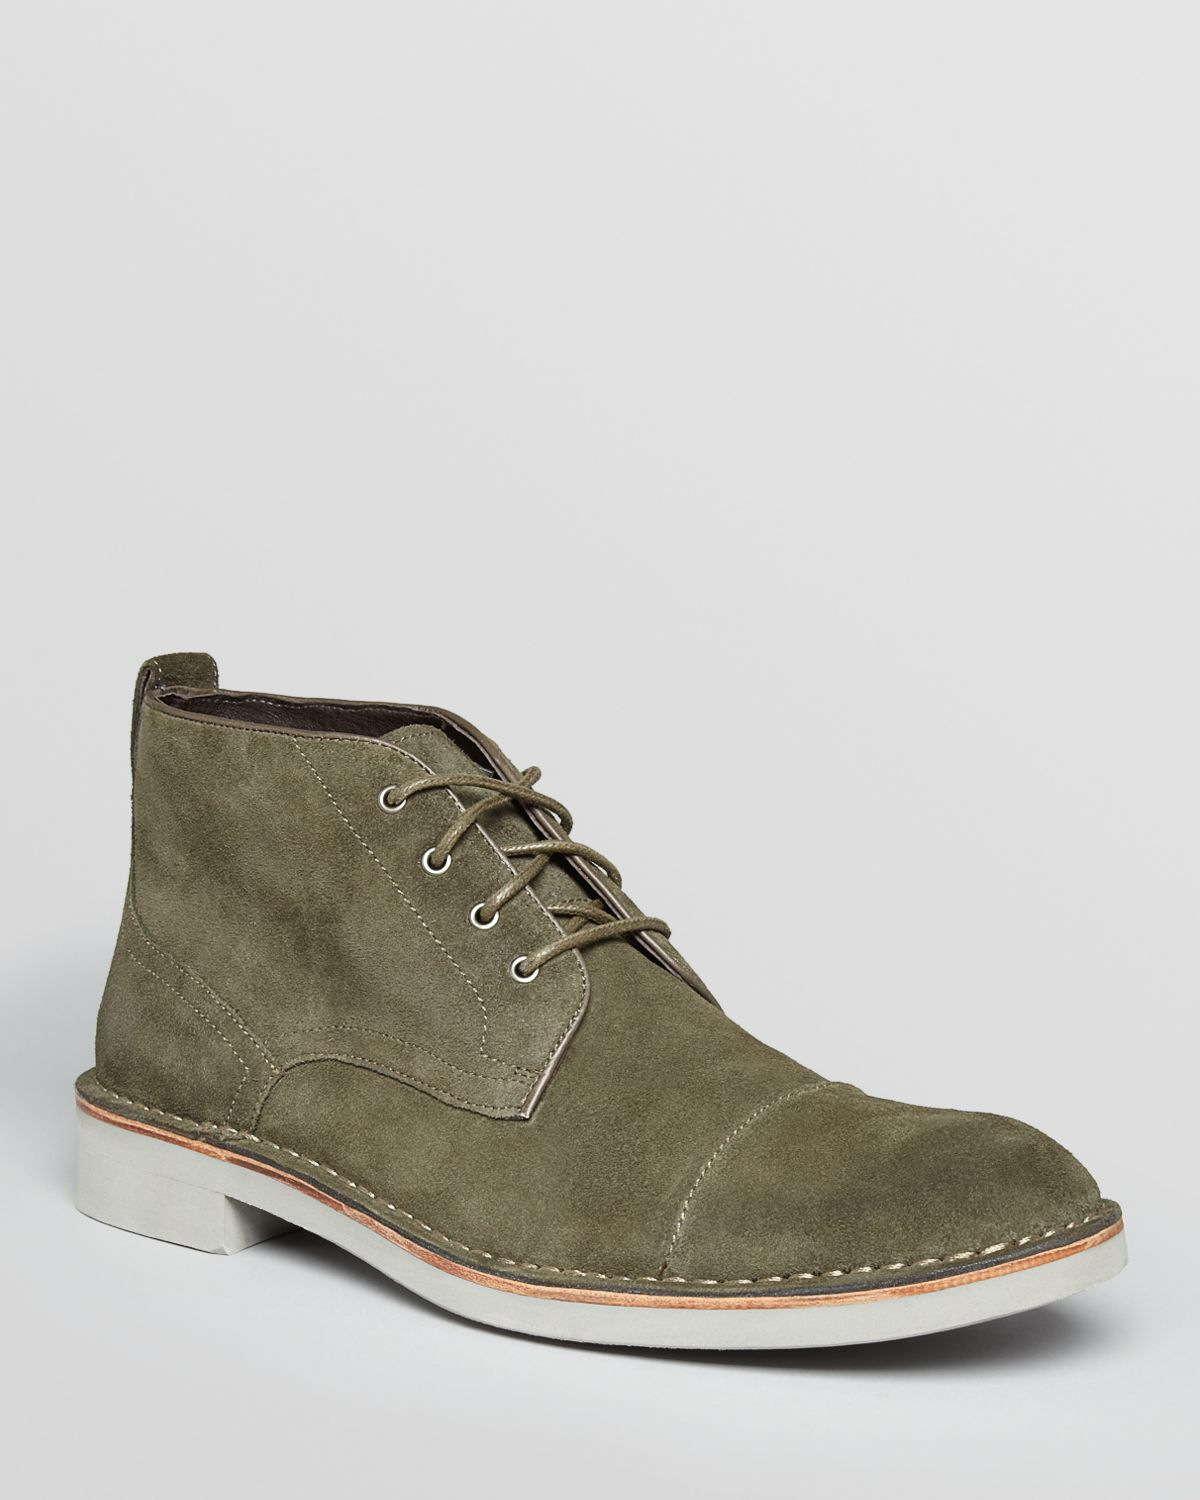 Asos Mens Shoes Review